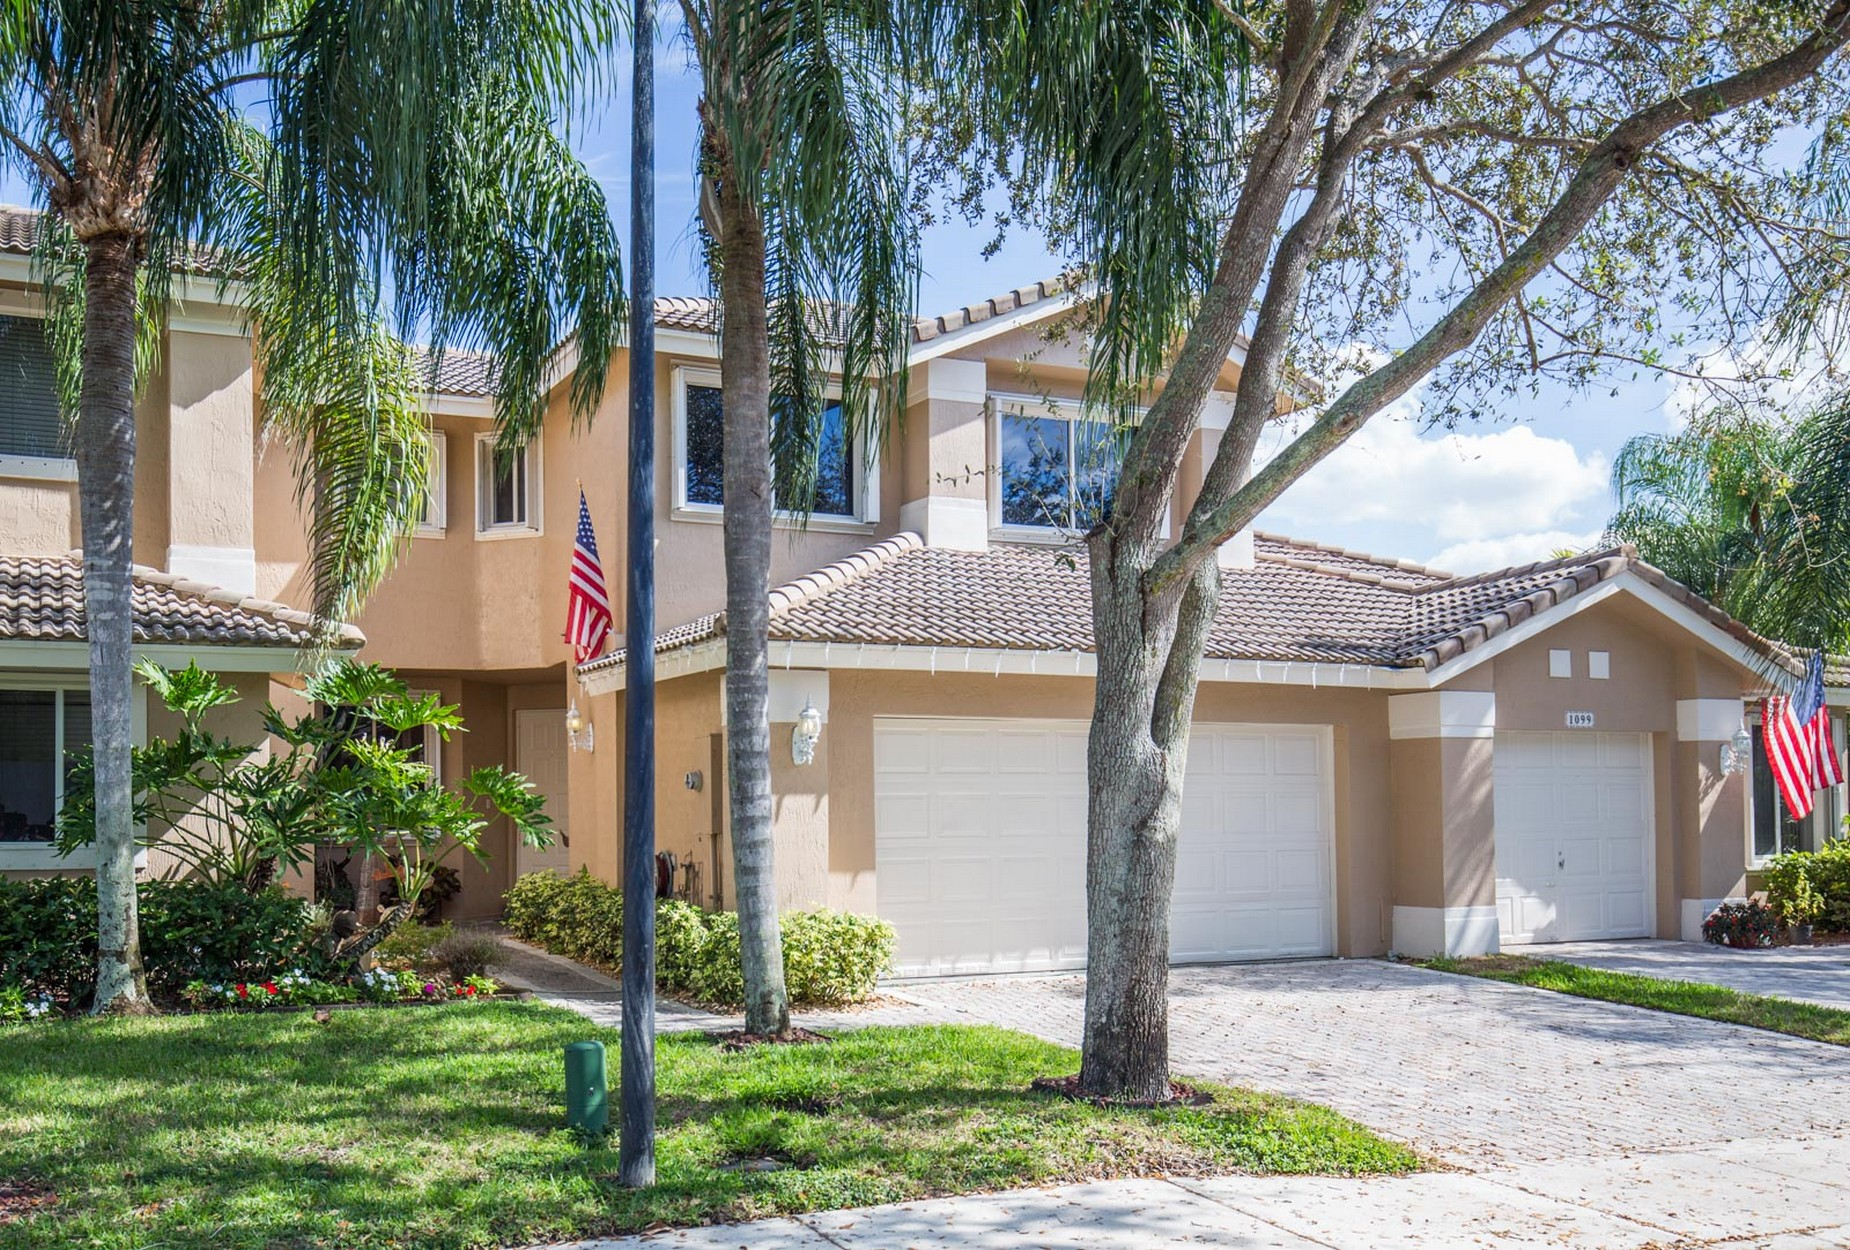 Casa unifamiliar adosada (Townhouse) por un Venta en 1087 Sw 158th Way #1087 1087 Sw 158th Way 1087 Pembroke Pines, Florida, 33027 Estados Unidos